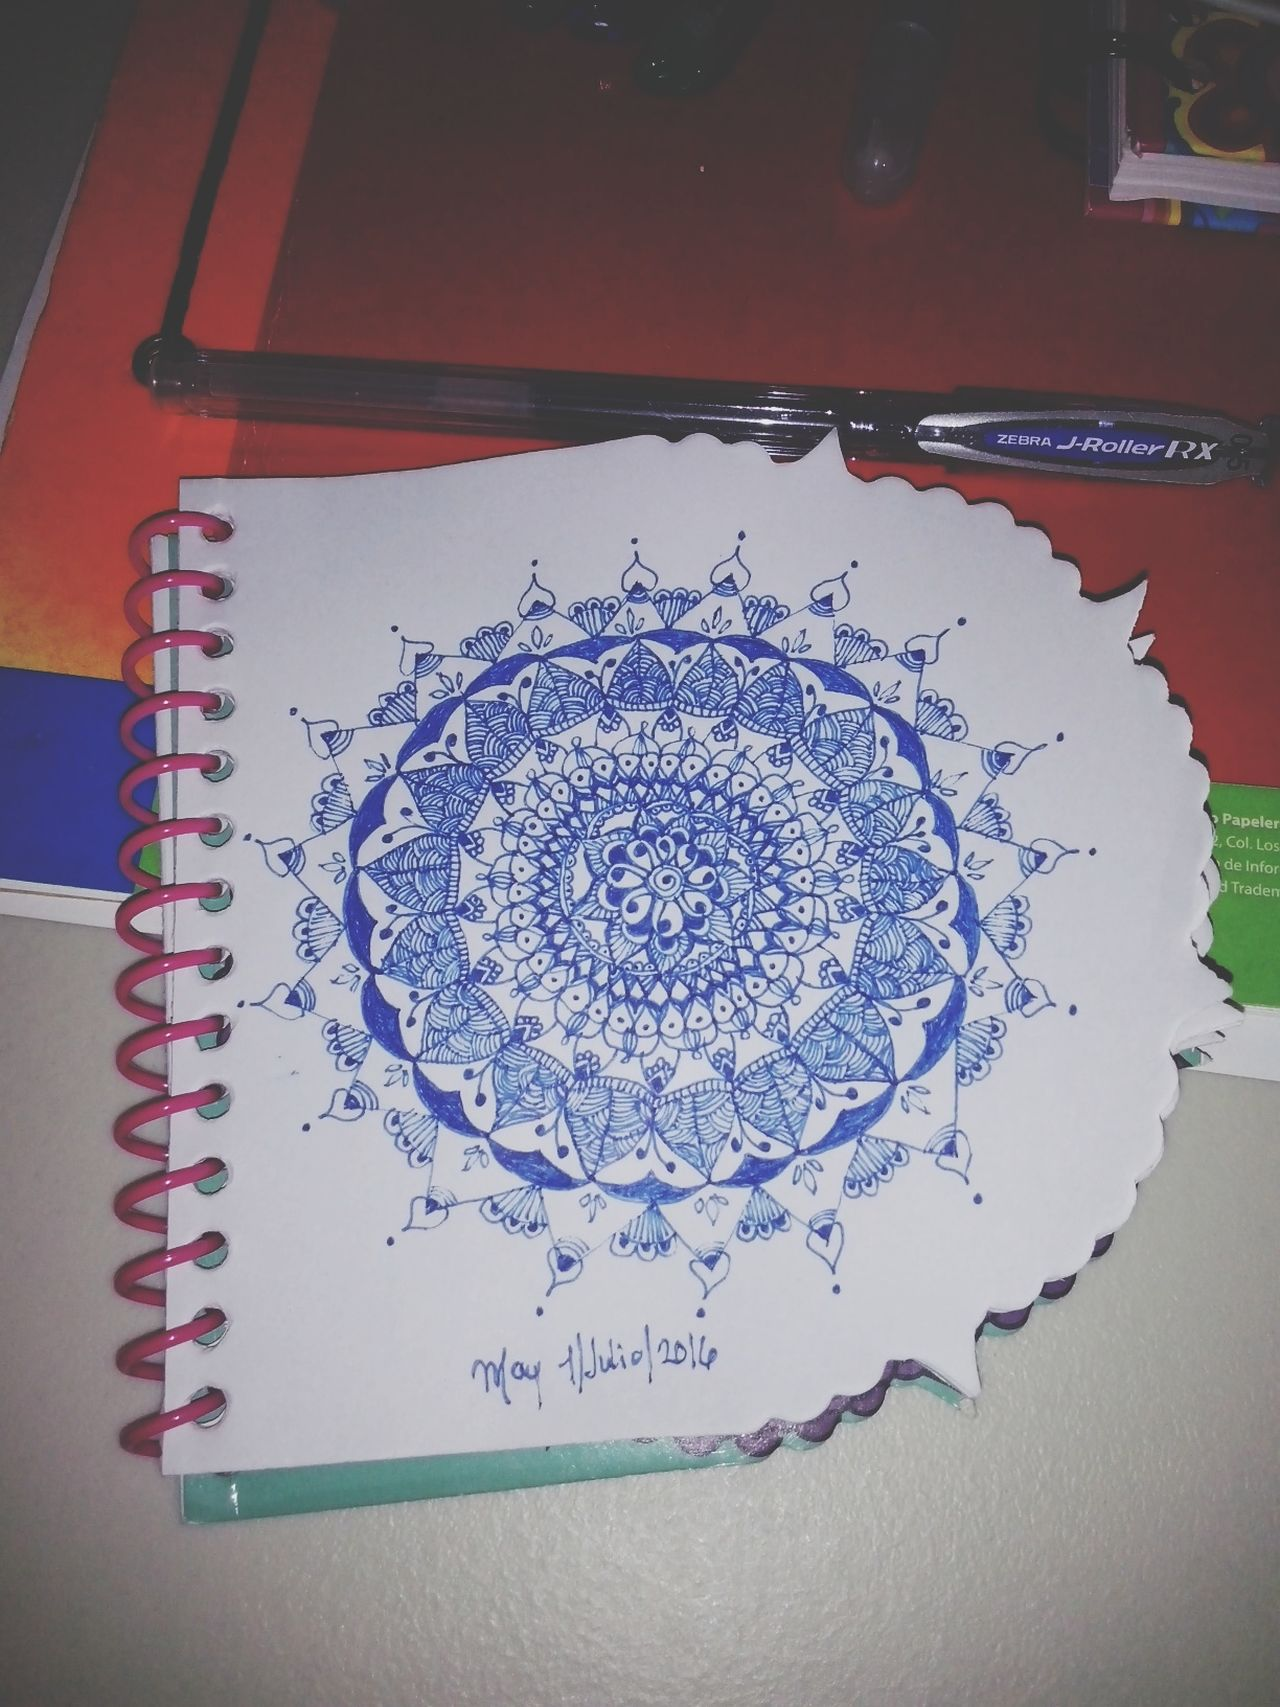 First mandala of July Drawing ✏ Zendala Mandala Zentangle Zentangleart Draw Mandala Painting Mandala Passion Art, Drawing, Creativity Patterns Relaxing Concentration Creativity Taking Photos